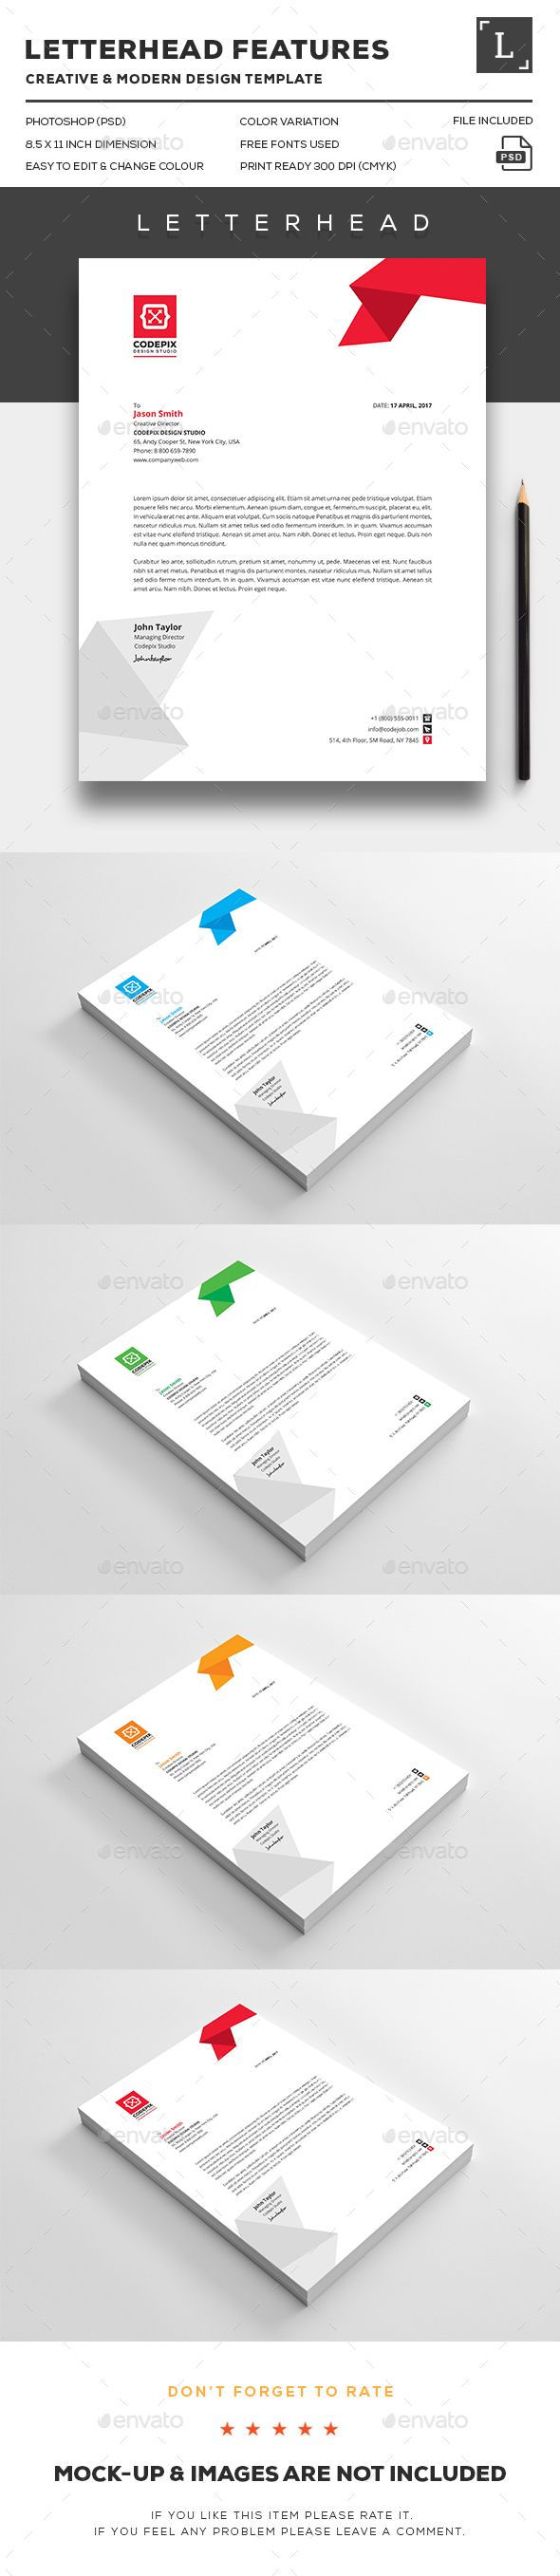 Business letterhead design template stationery print template psd business letterhead design template stationery print template psd download here httpgraphicriveritembusiness letterhead 16391027refyinkira accmission Images